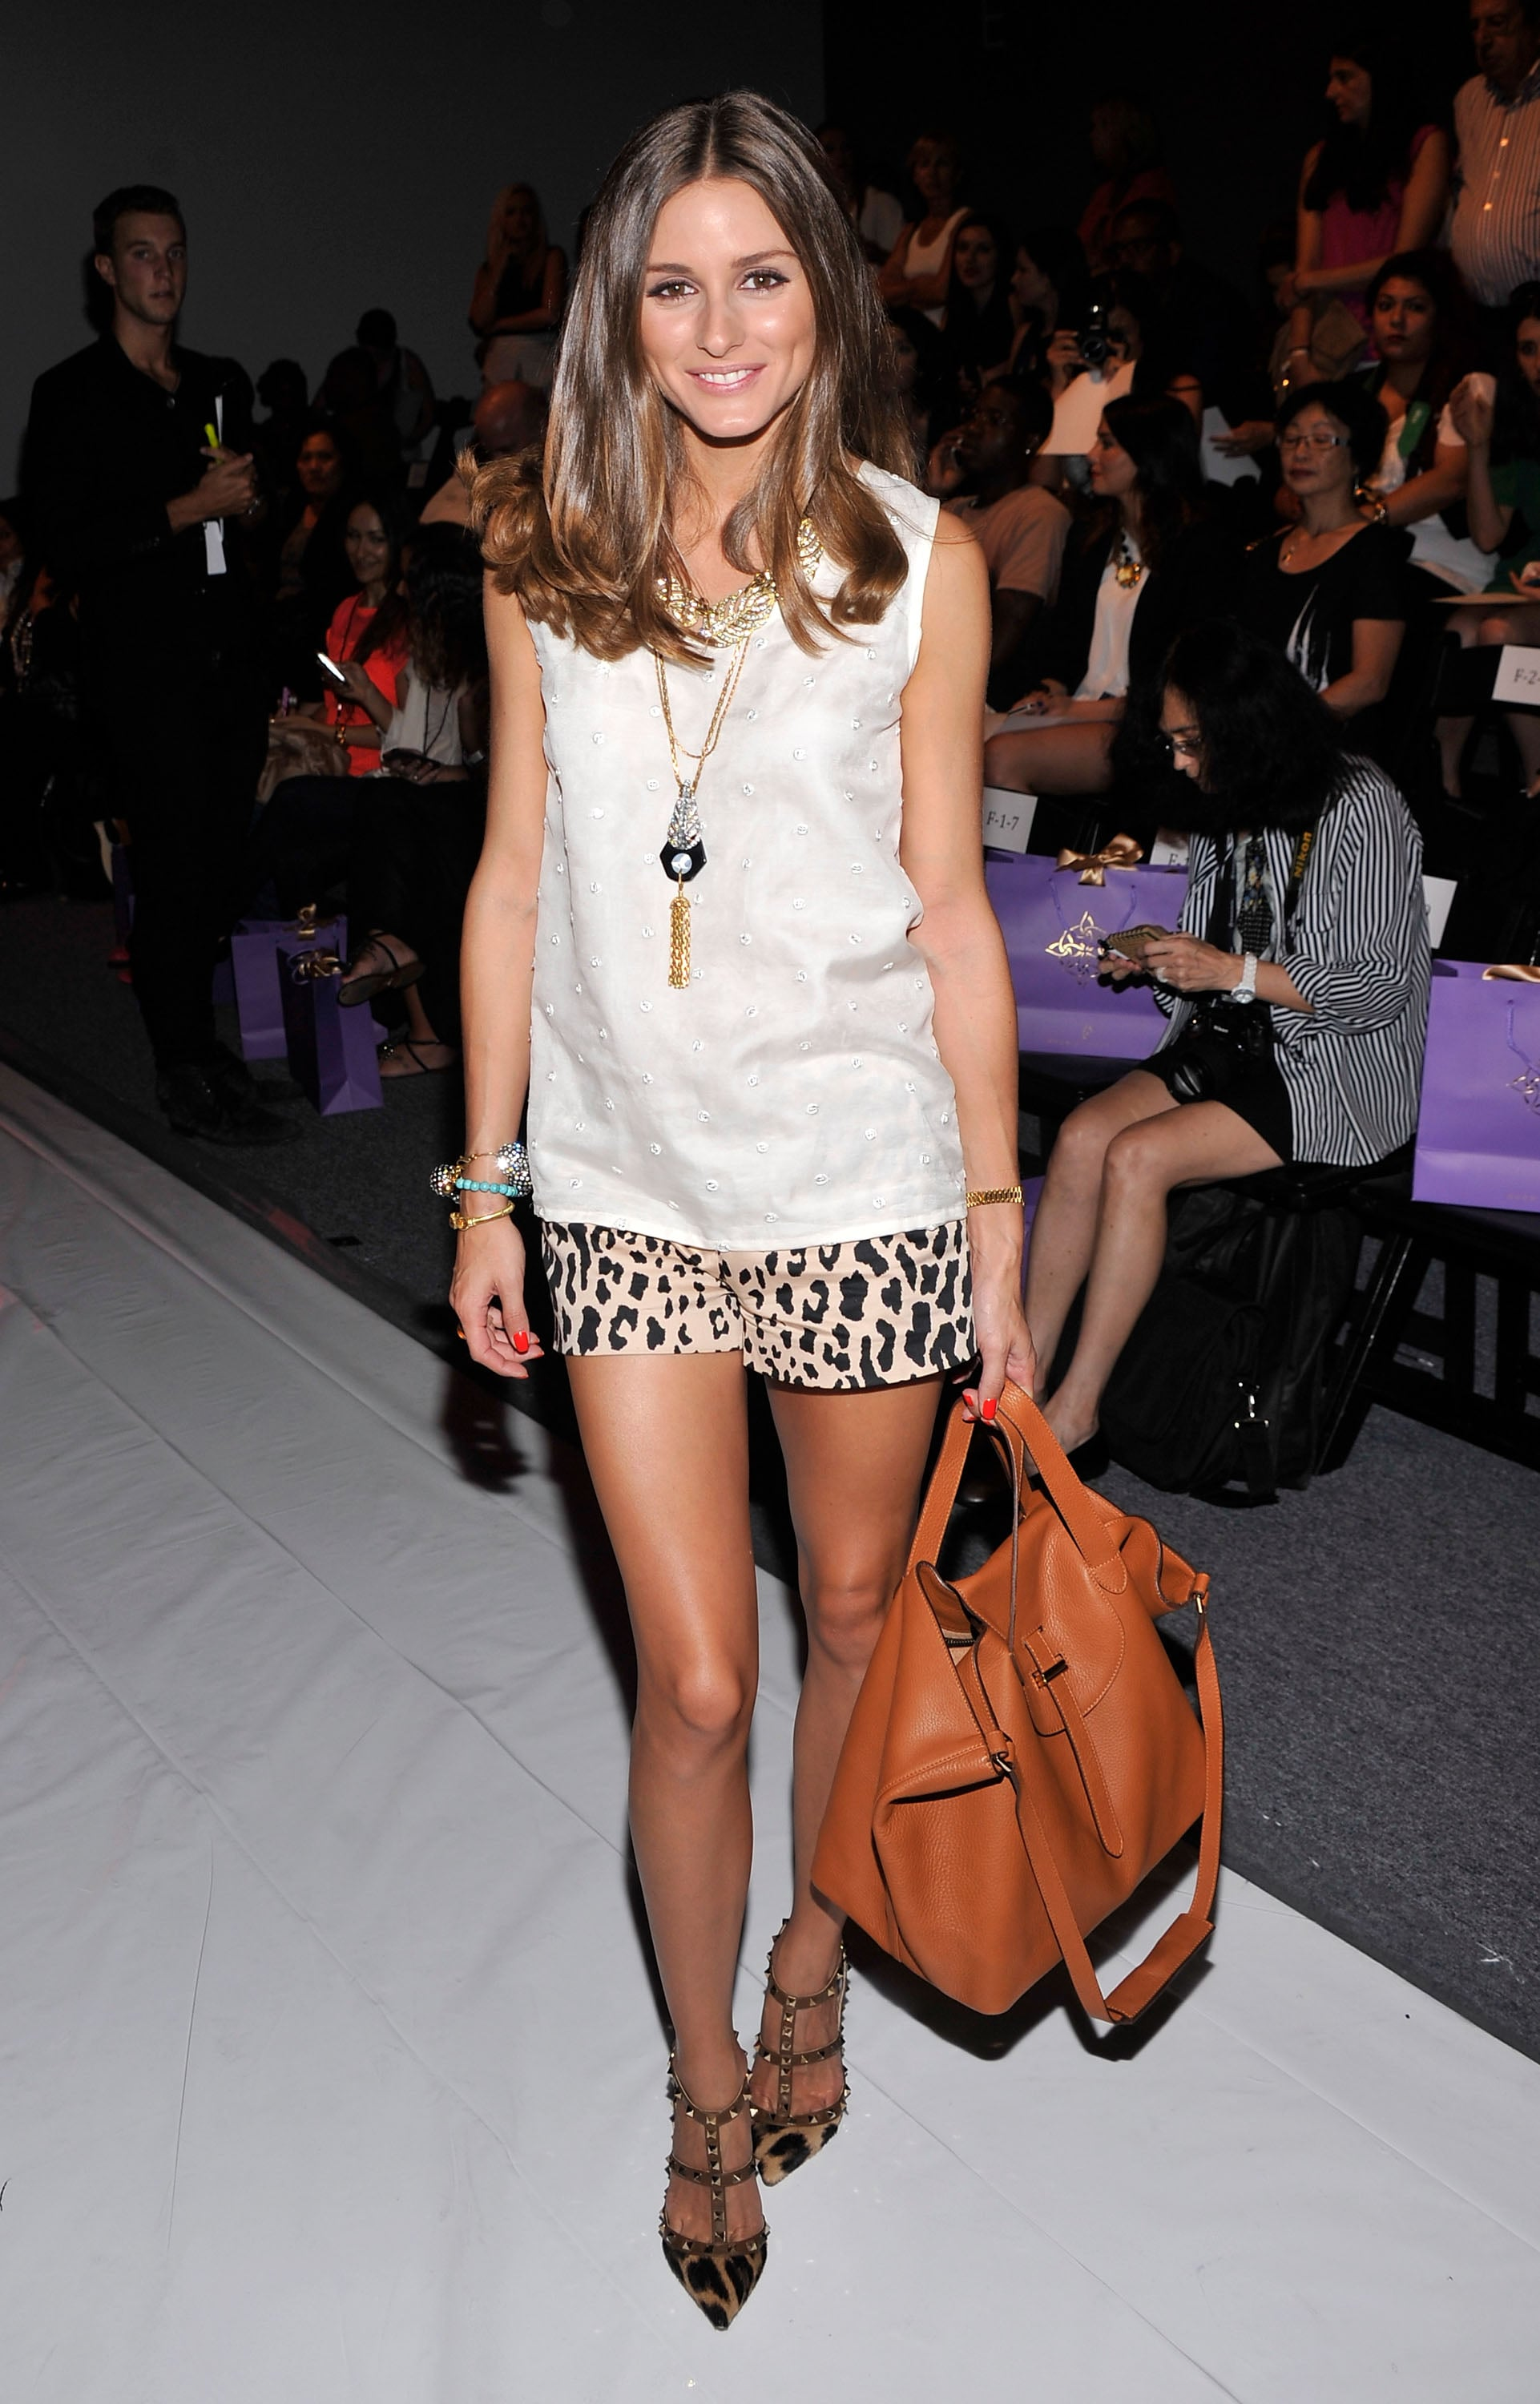 Olivia kicked off Fashion Week in NYC at Noon by Noor, sporting a cool, ladylike mix of embellishment and print. She outfitted a pair of leopard-print Tibi shorts with a Noon by Noor shell and finished it all off with Lulu Frost jewels, a Meli Melo bag, and studded Valentino heels.